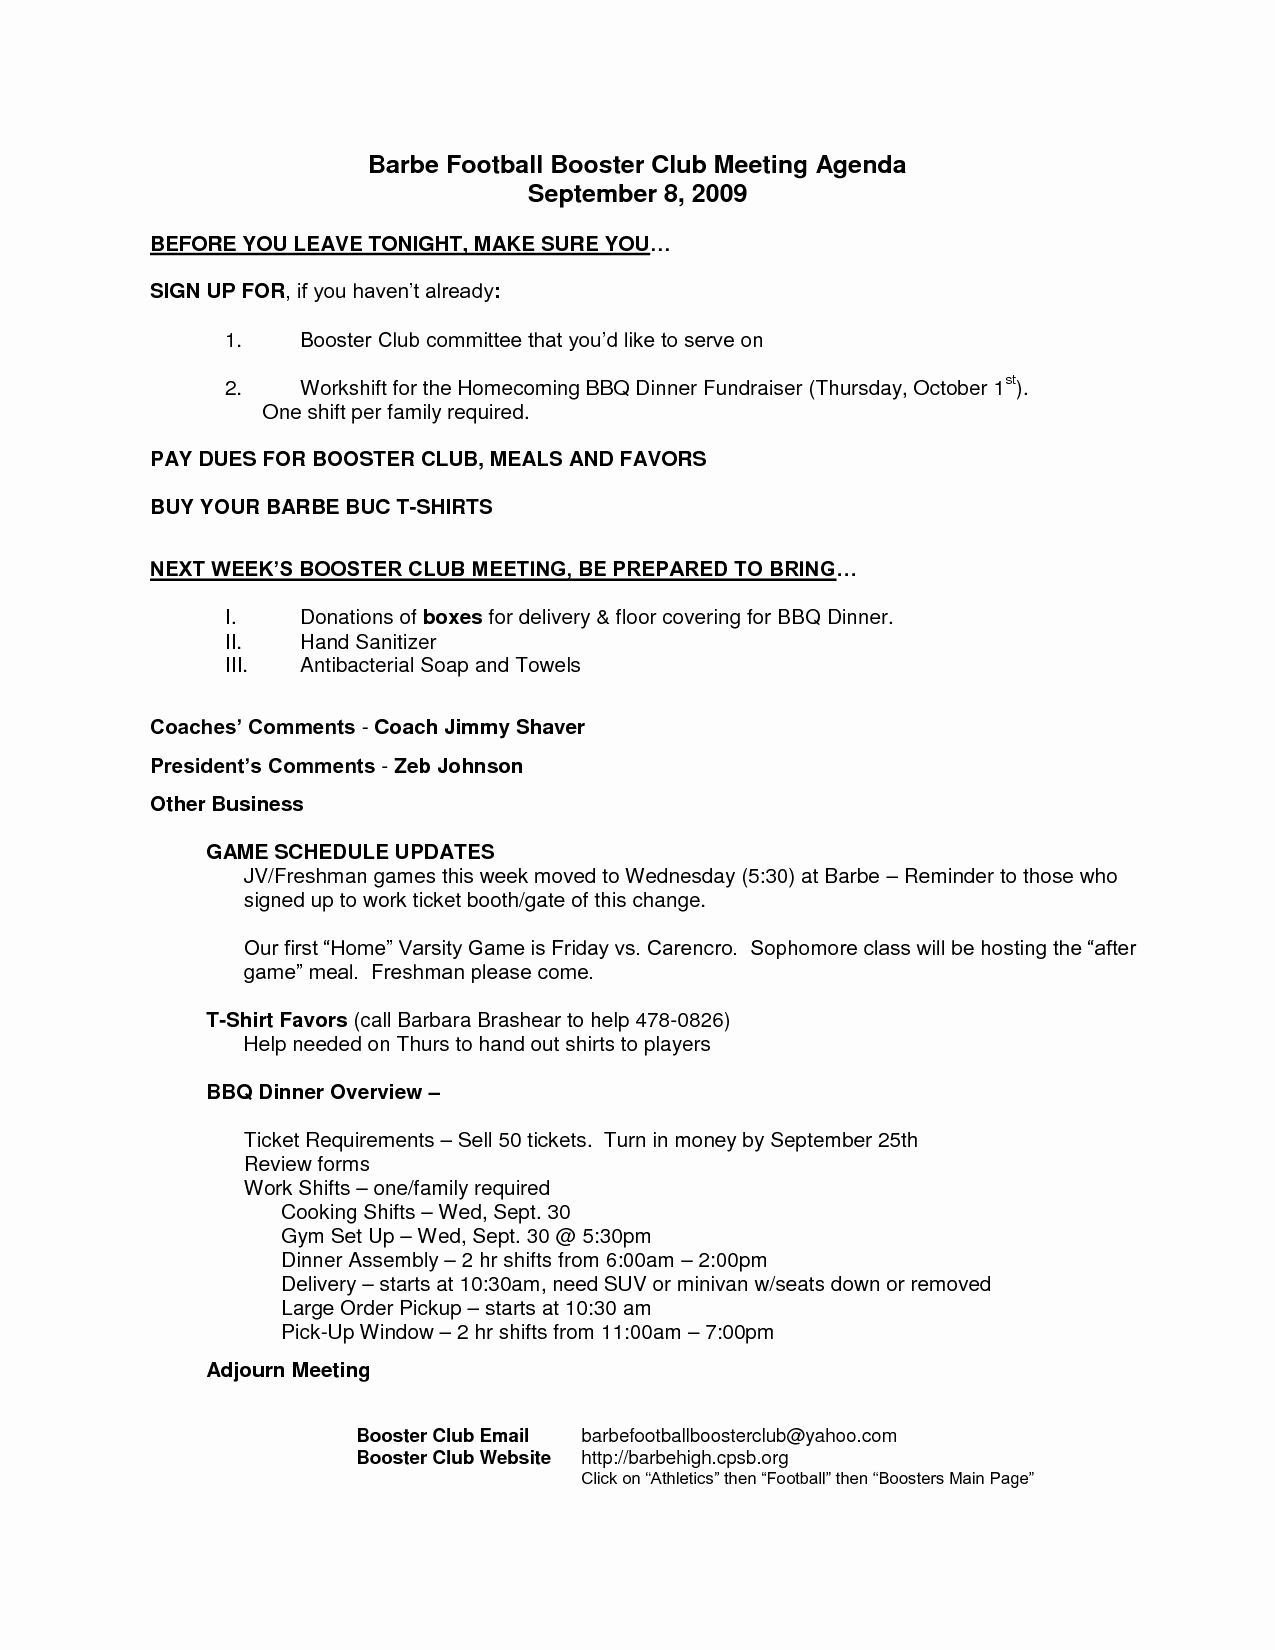 Booster Club Meeting Minutes Template Lovely 7 Best Of Club Meeting Agenda Template Sample